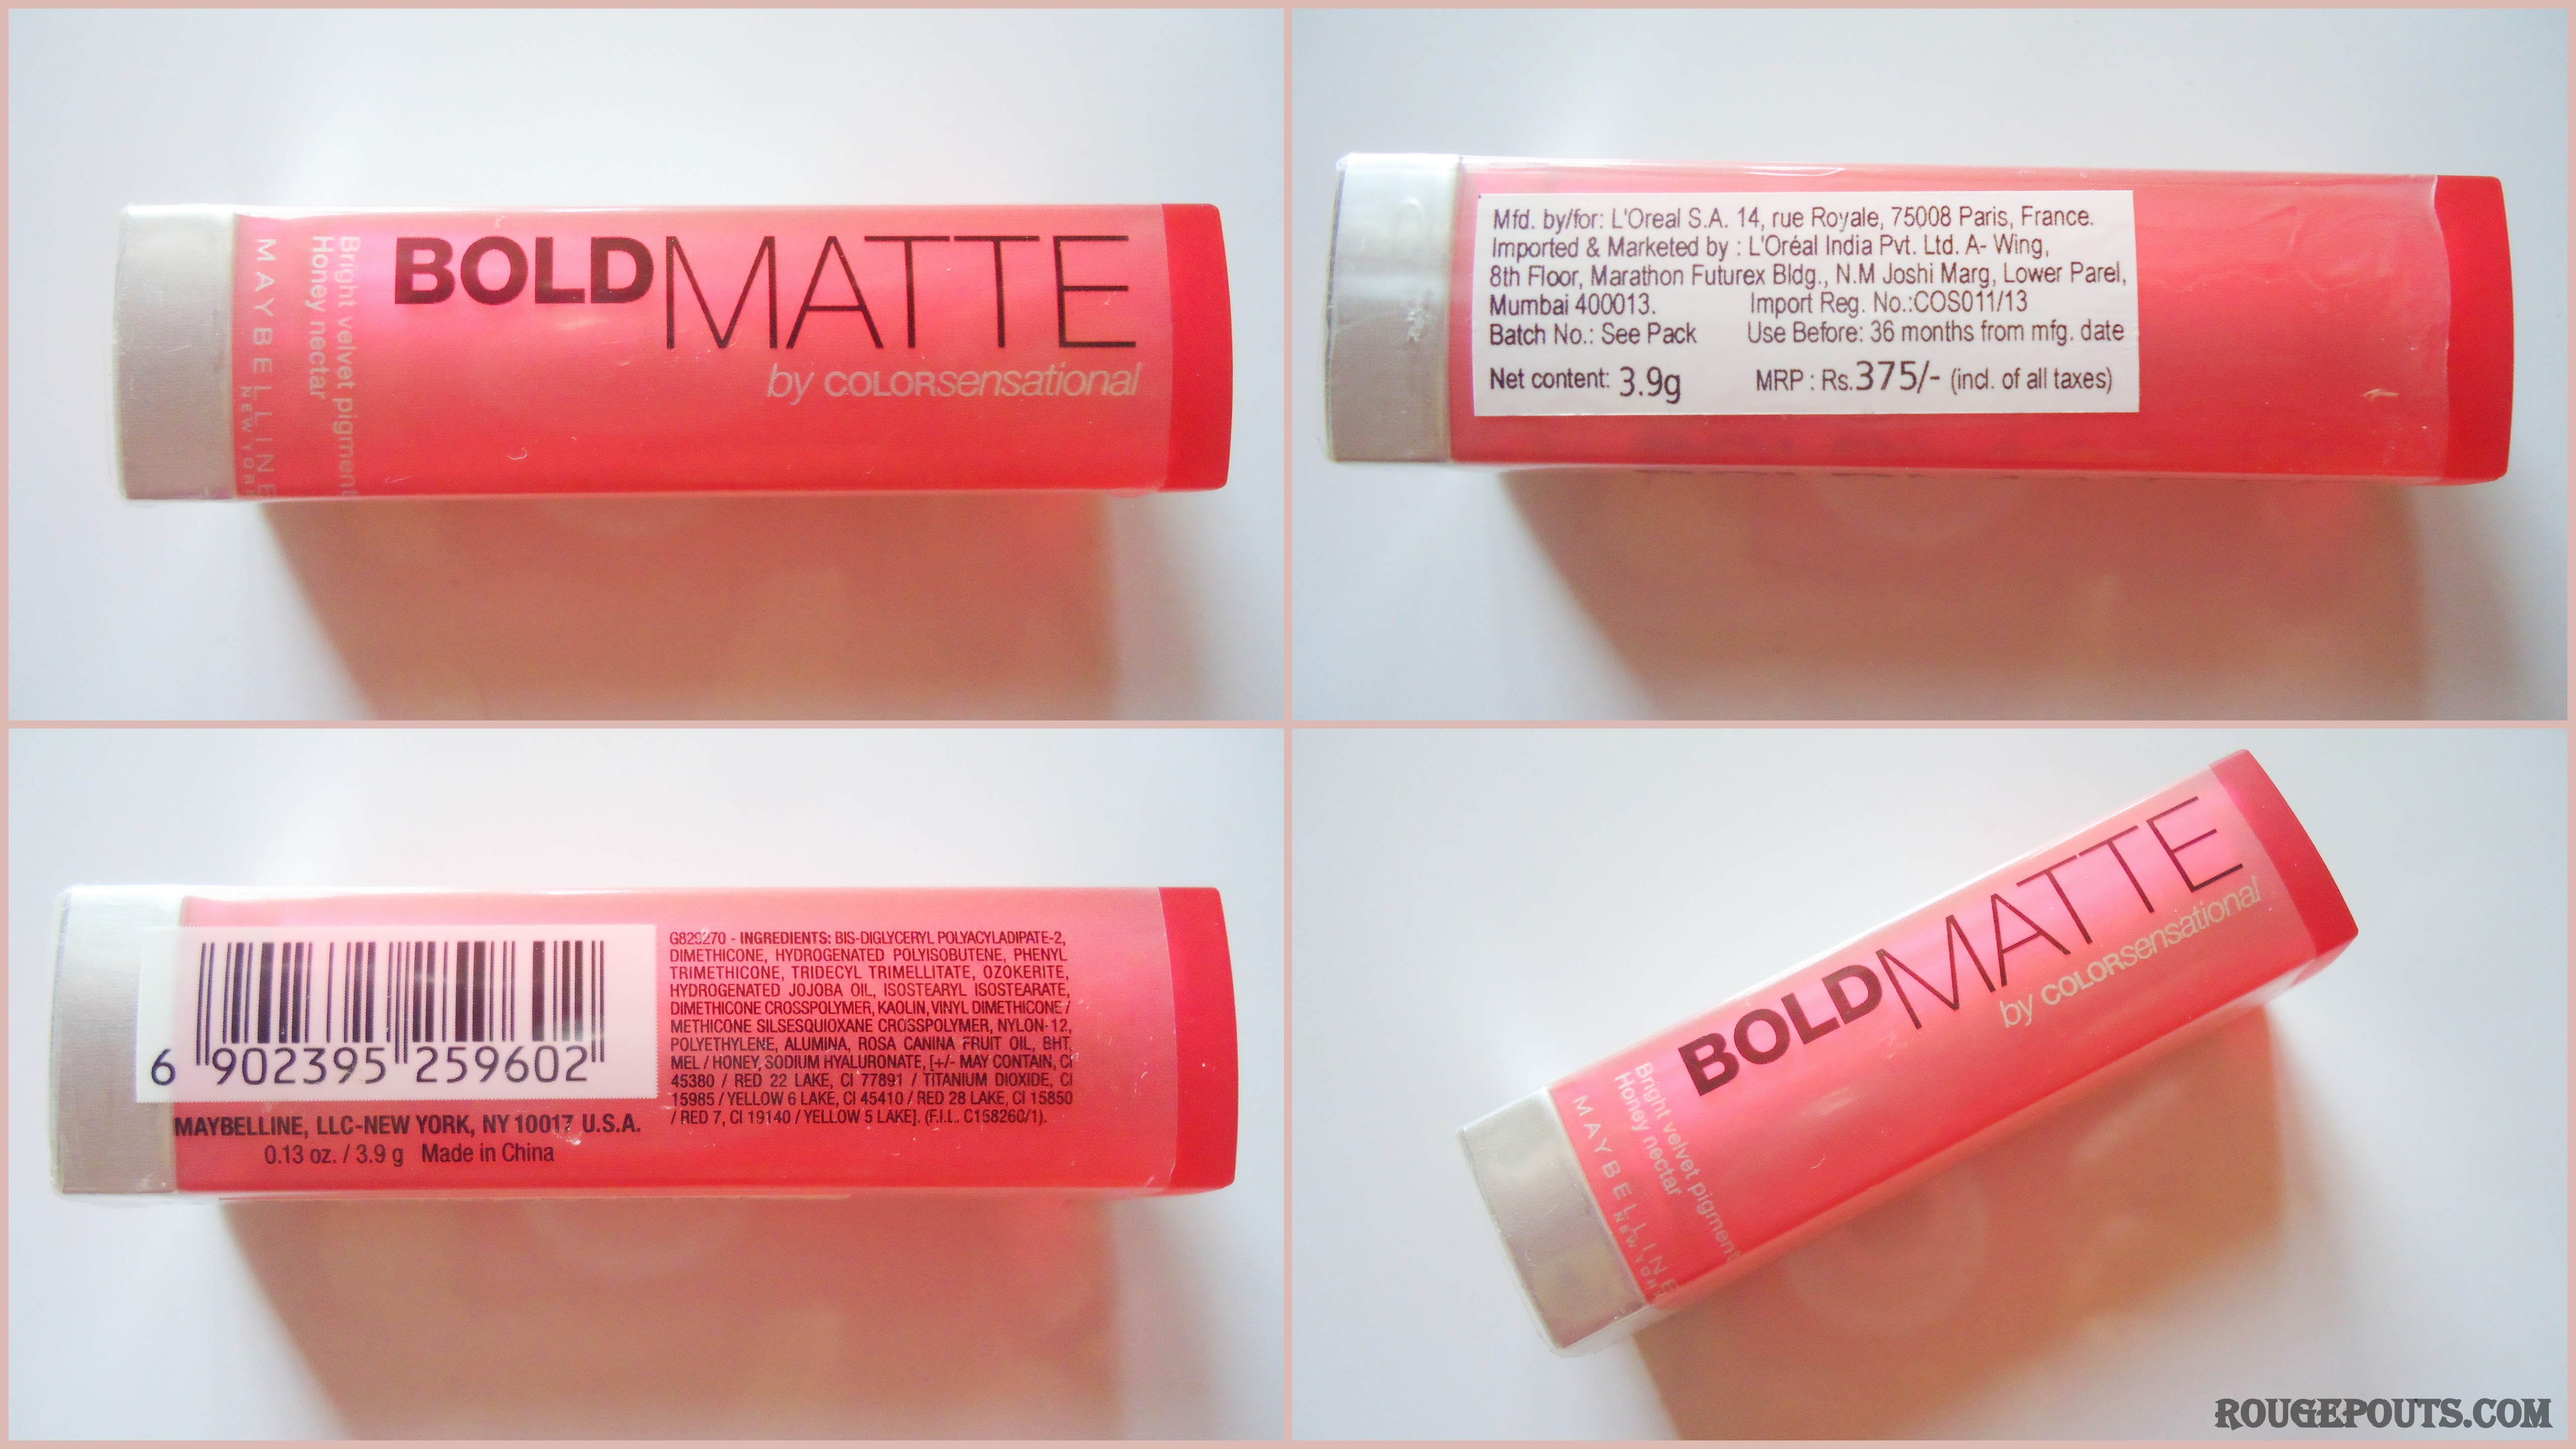 6d21608b30 Maybelline New York Bold Matte Lipstick in the shade MAT 2 Review ...